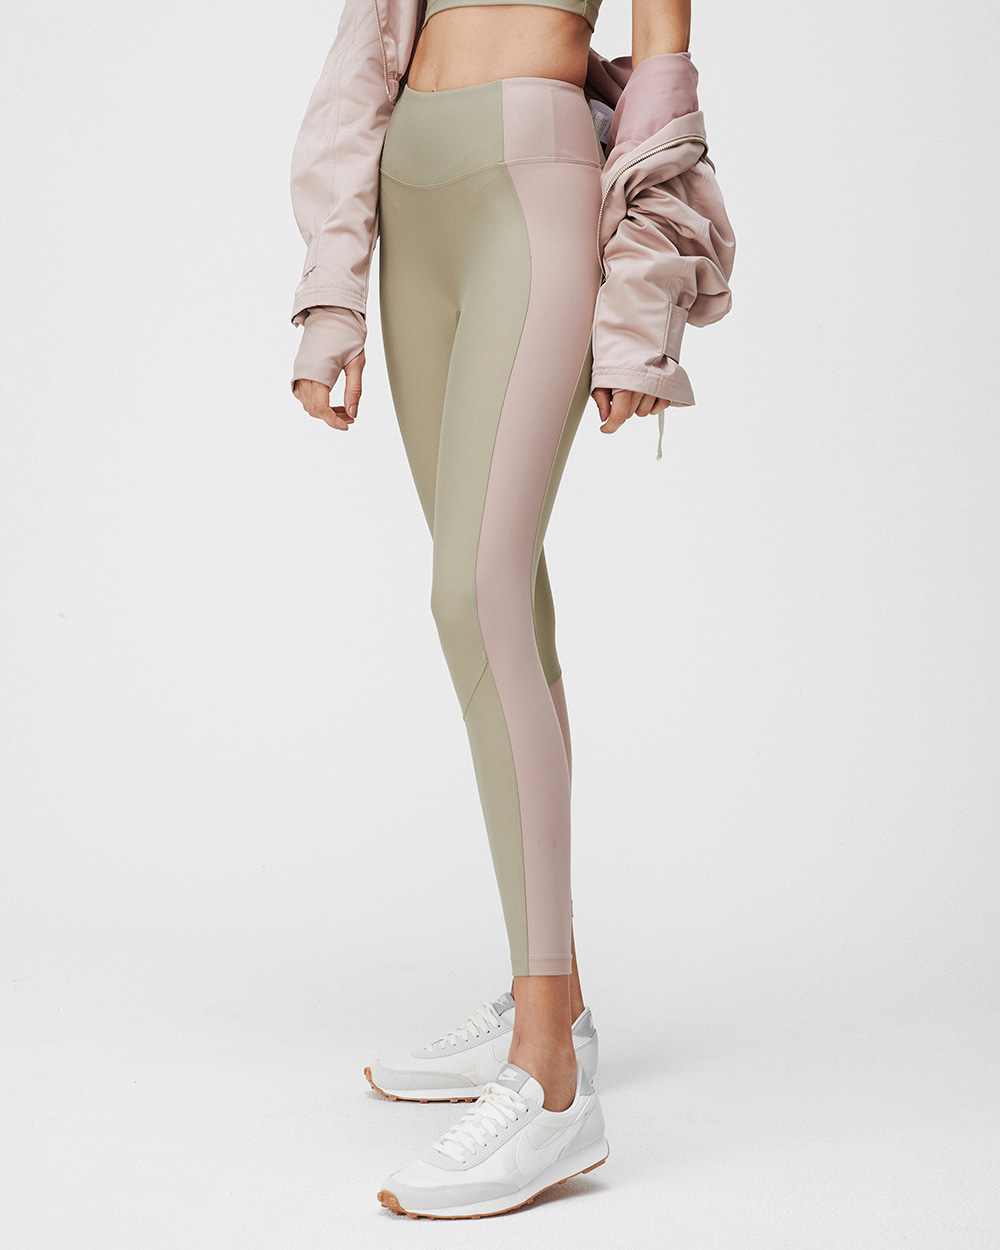 ALEX LEGGINGS SAGE&TERRACOTTA BLUSH COMBO